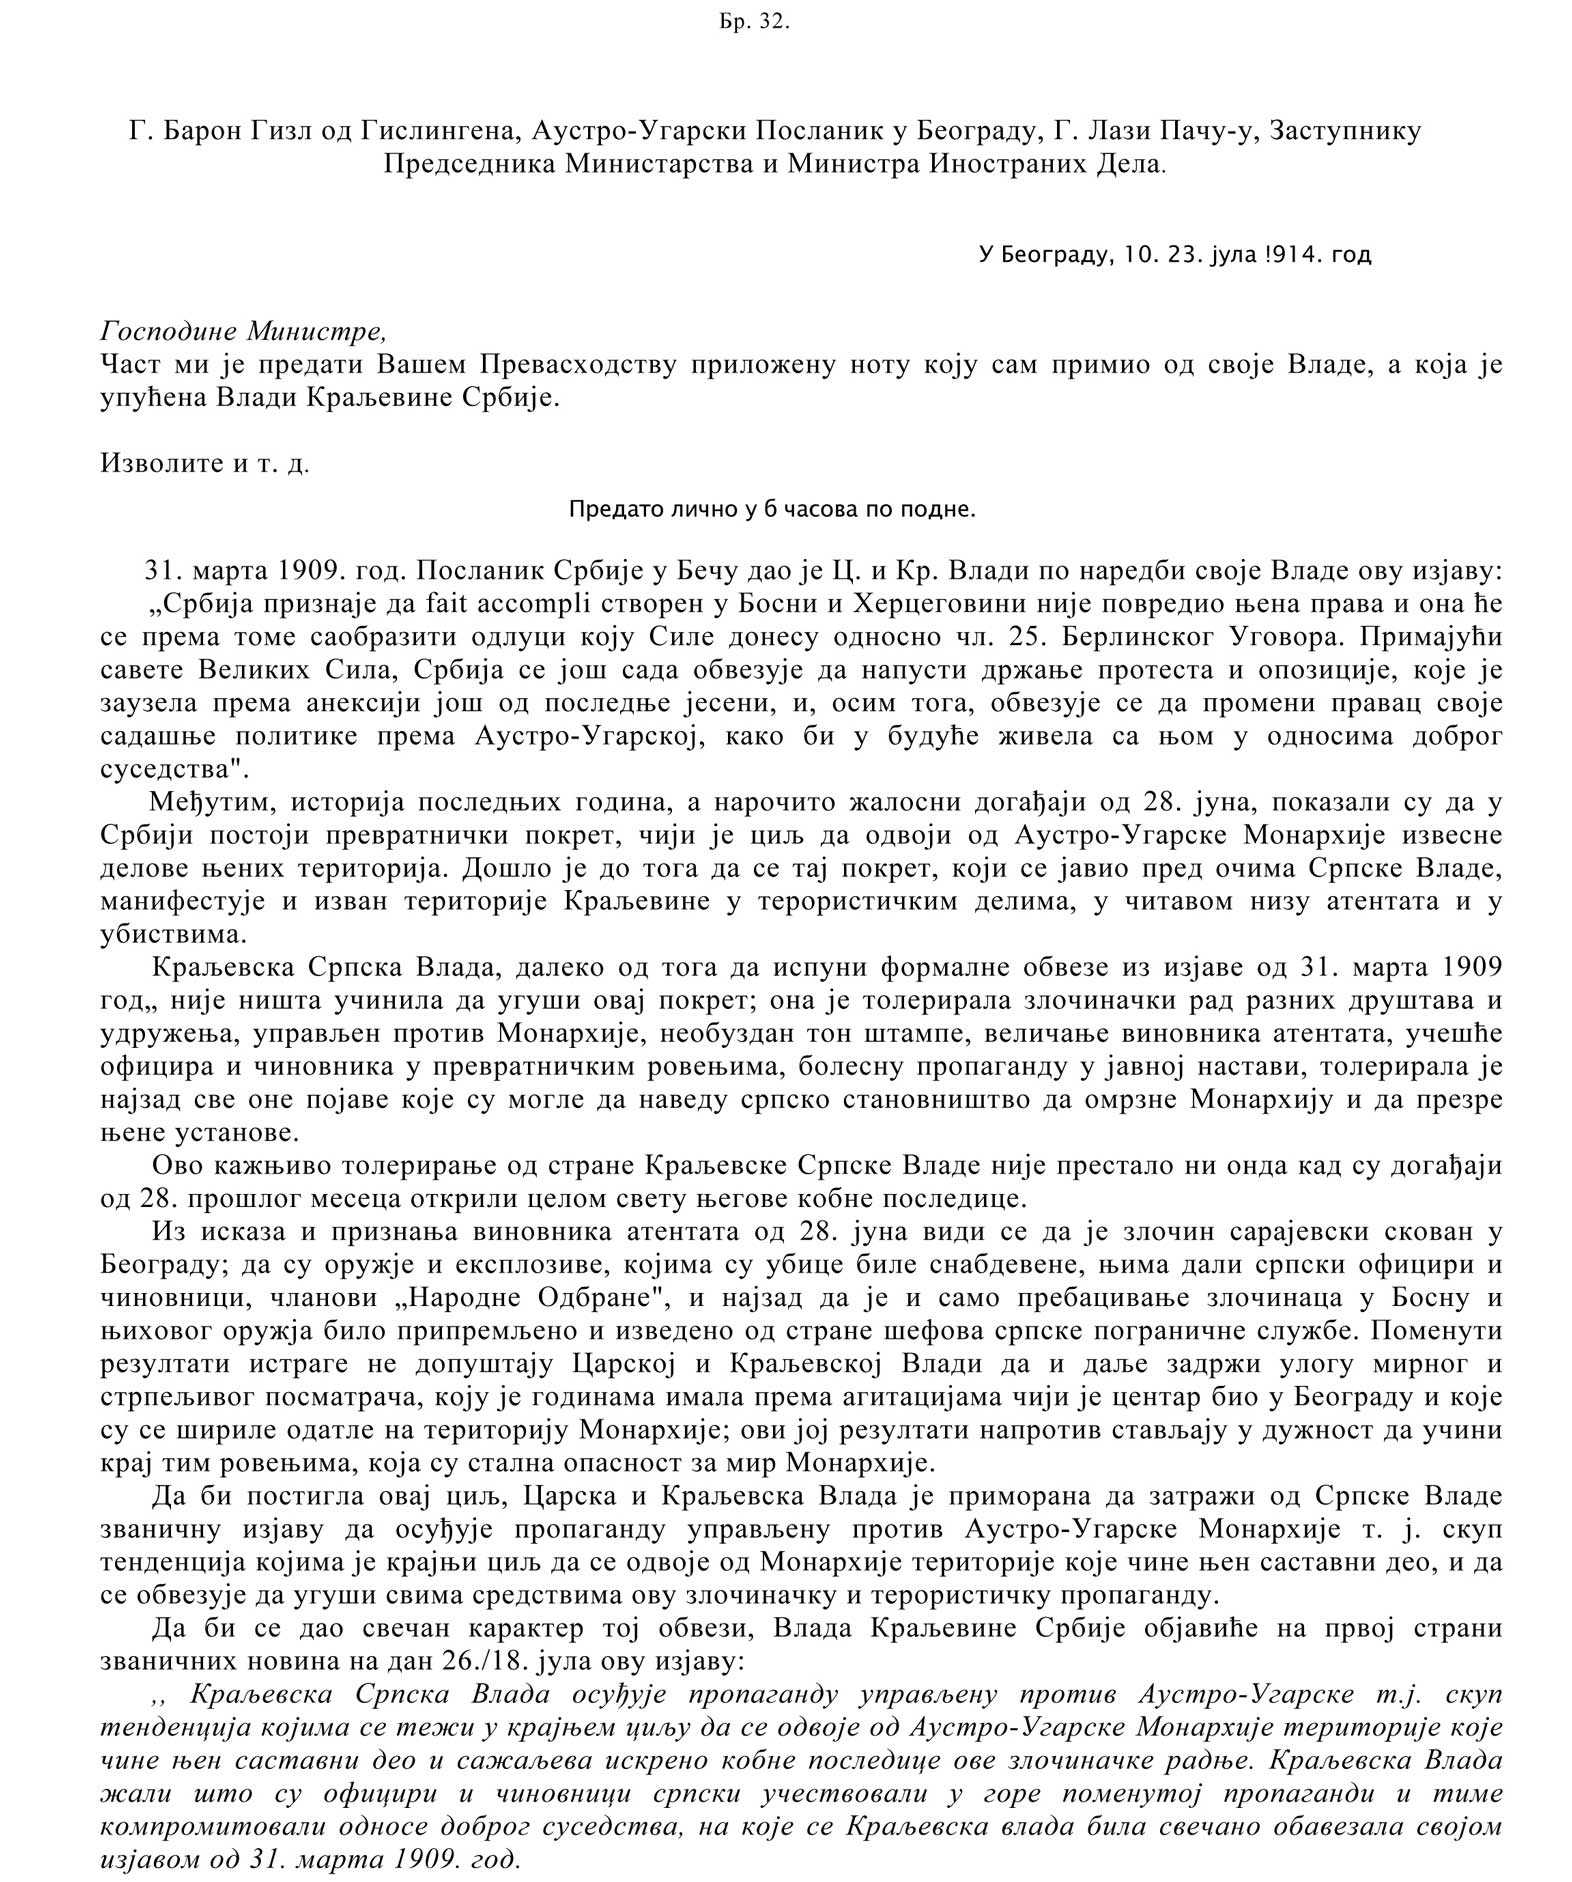 Austrohungarian ultimatum to Serbia and Serbian response